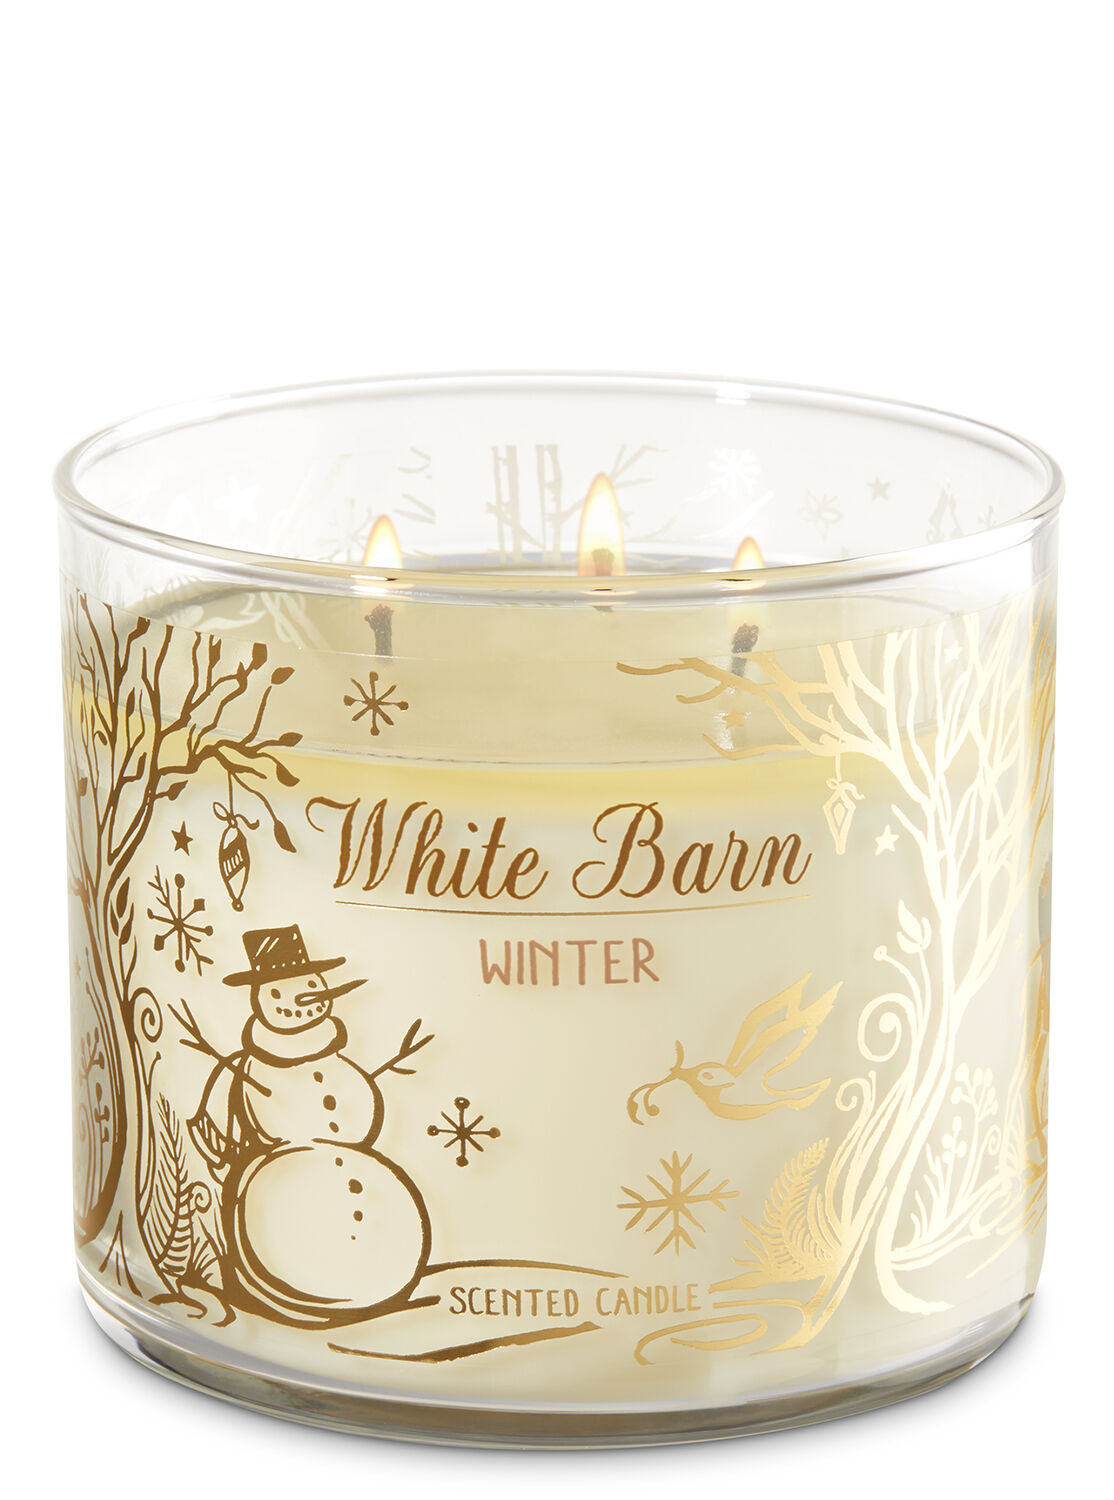 White Barn Winter 3 Wick Candle   Bath And Body Works. 3 Wick Candles   Bath   Body Works